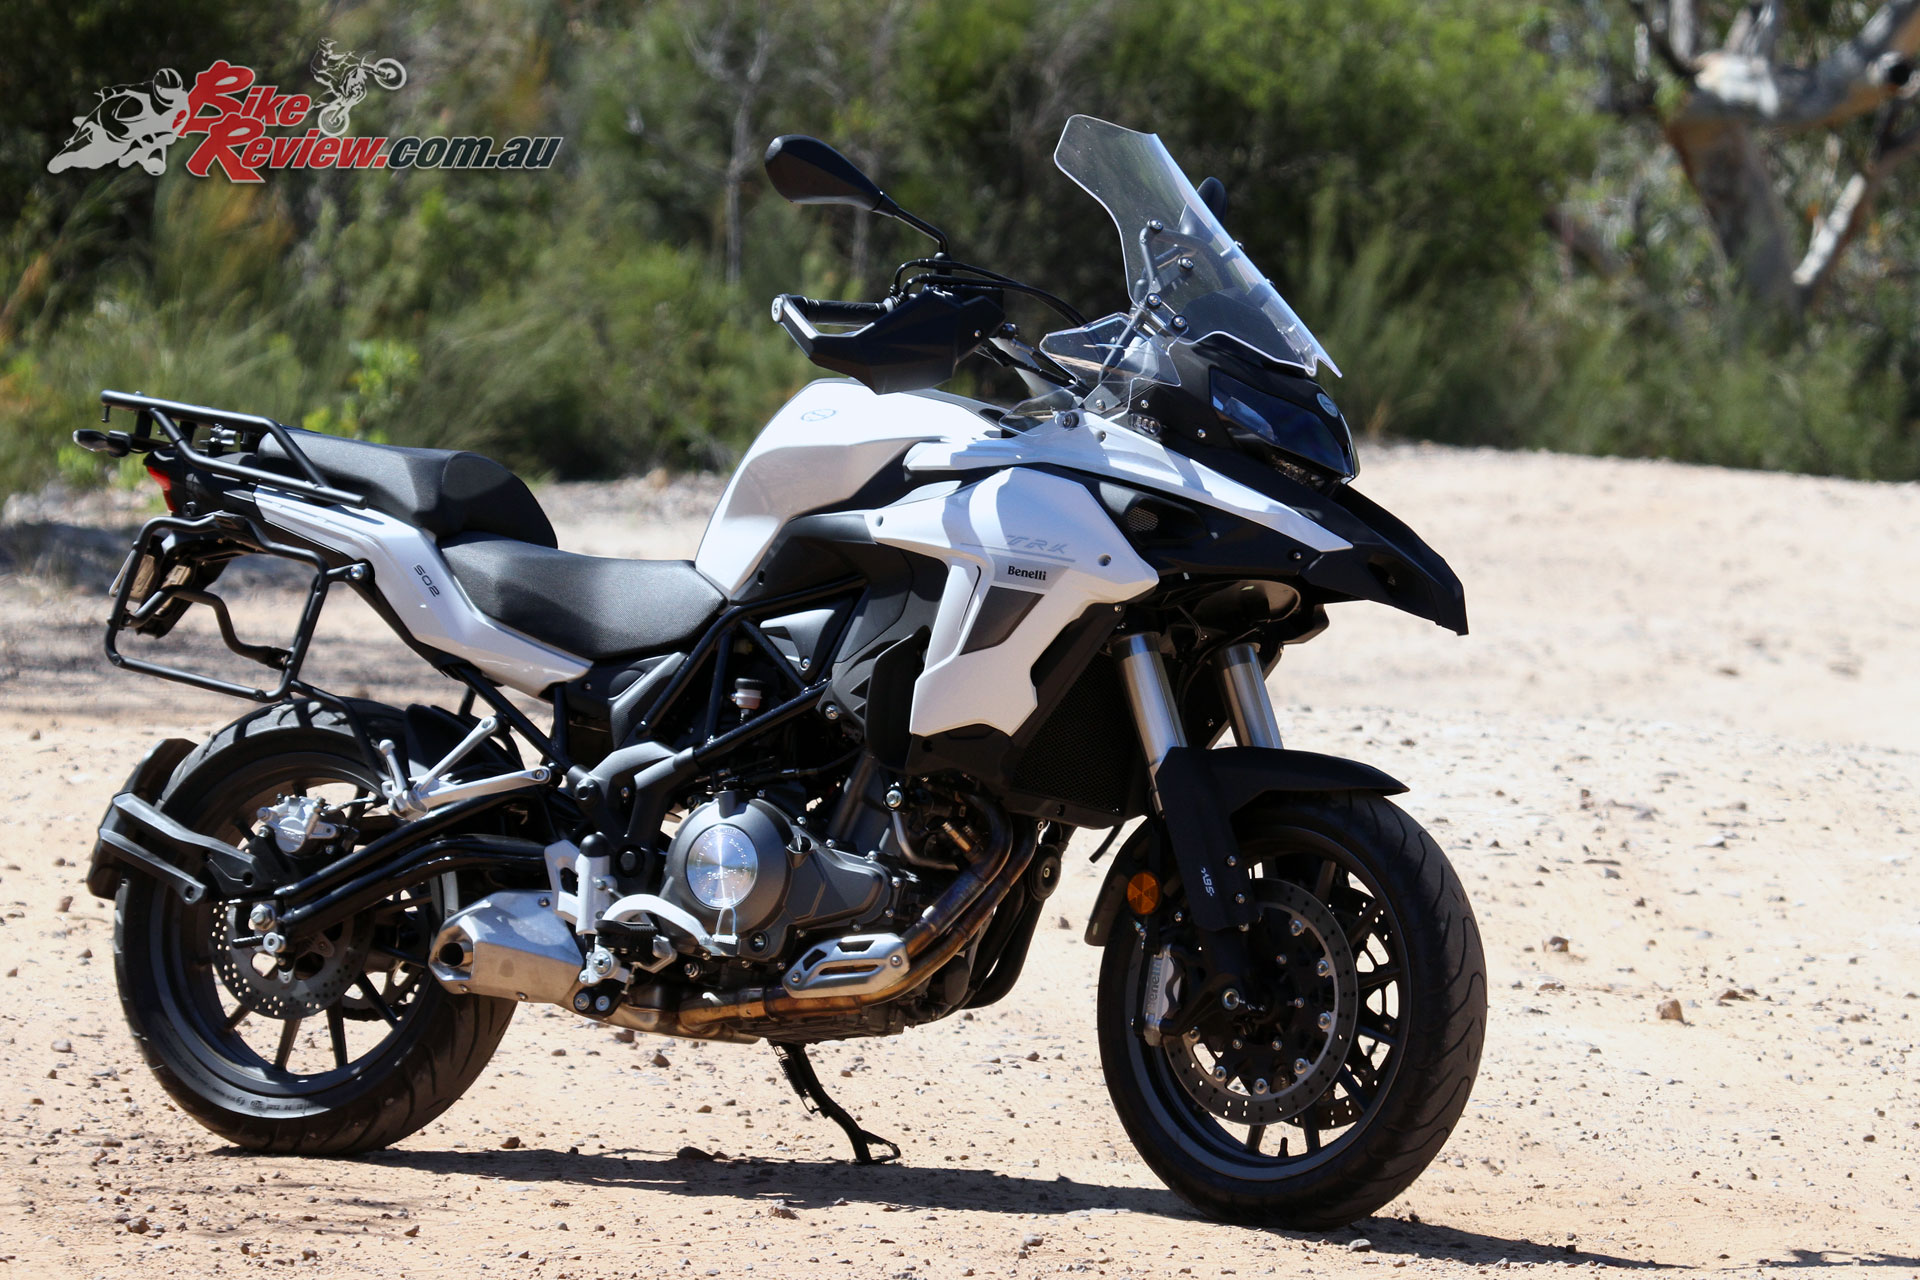 Benelli's TRK offers great styling for the price-point and looks like a much larger machine